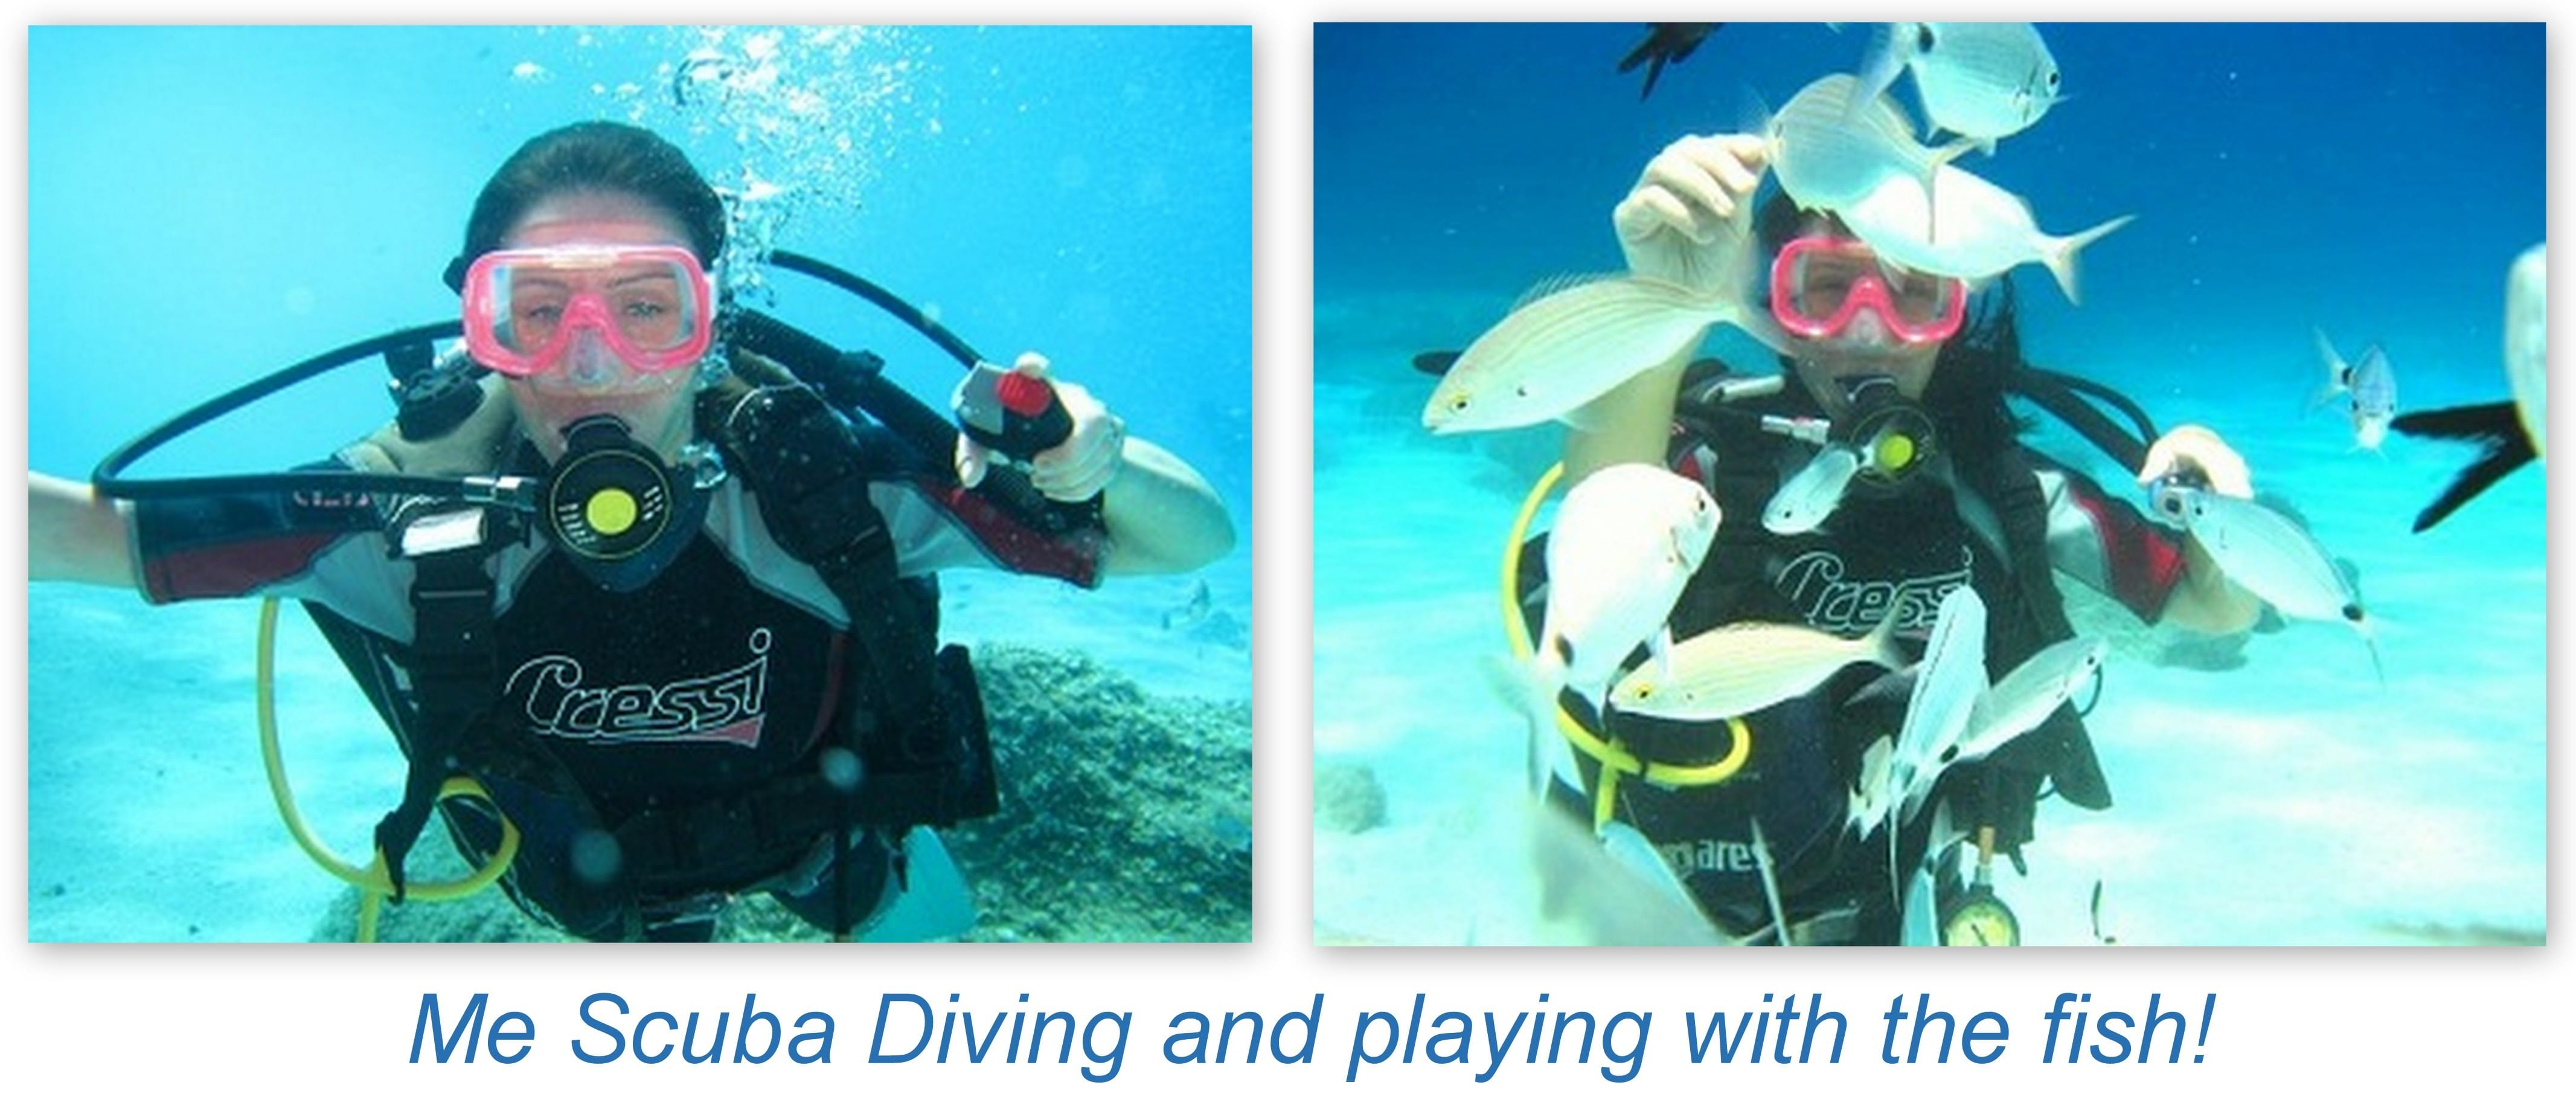 scuba diving research paper Be seen for their capacity to generate knowledge of the quality of the diving sites, site-specific marine conservation issues, and promoting the dive sites to the wider destination community the objectives of this article are to: 1 introduce two successful australian volun- teer marine conservation–underwater research.